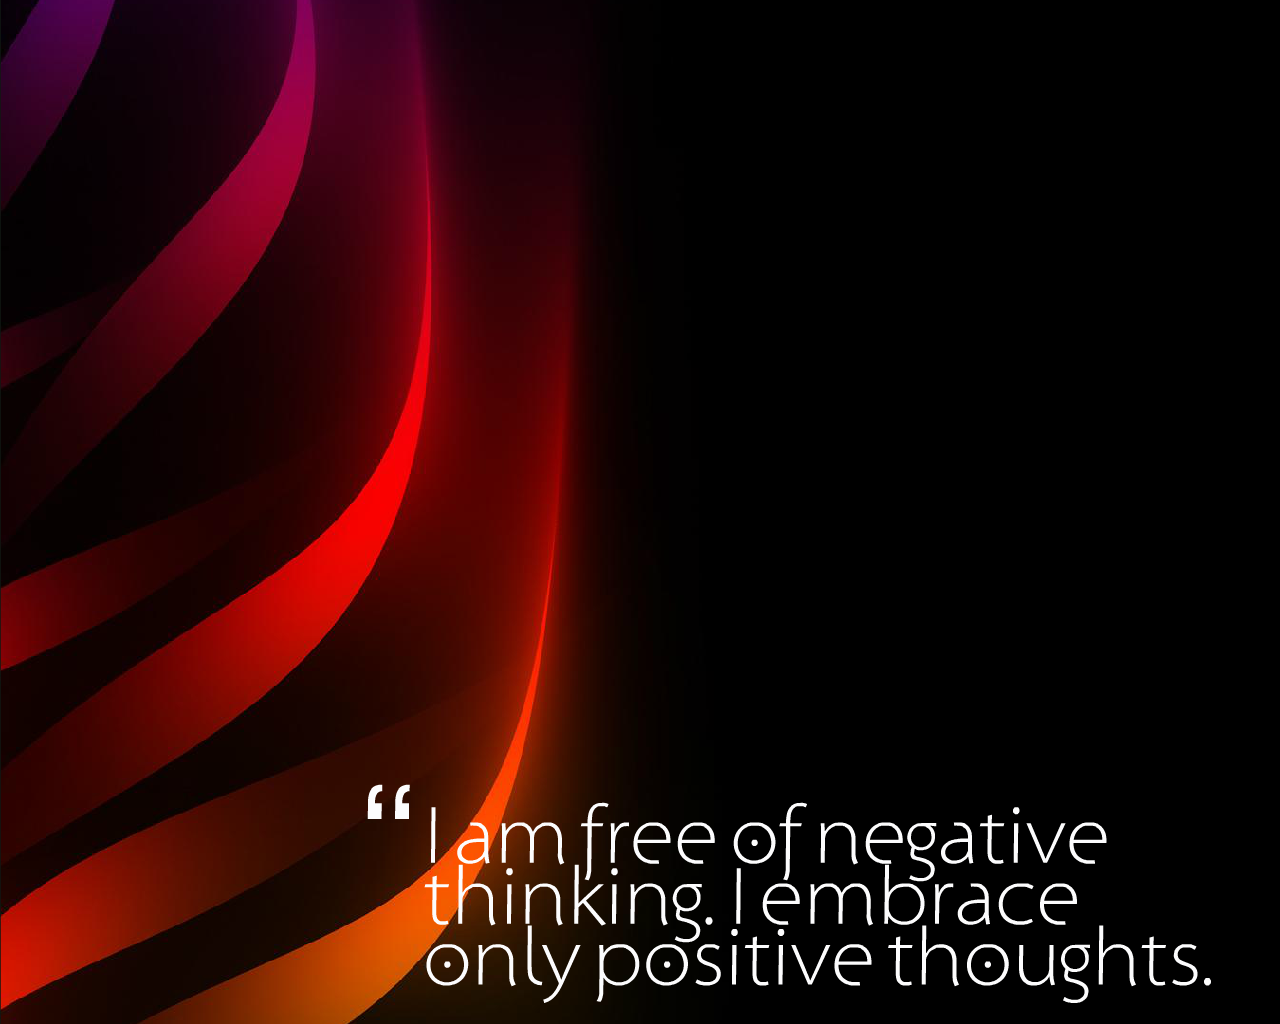 March 2014 Positive Affirmations Wallpapers, Positive Affirmations Wallpapers, Affirmations Wallpapers